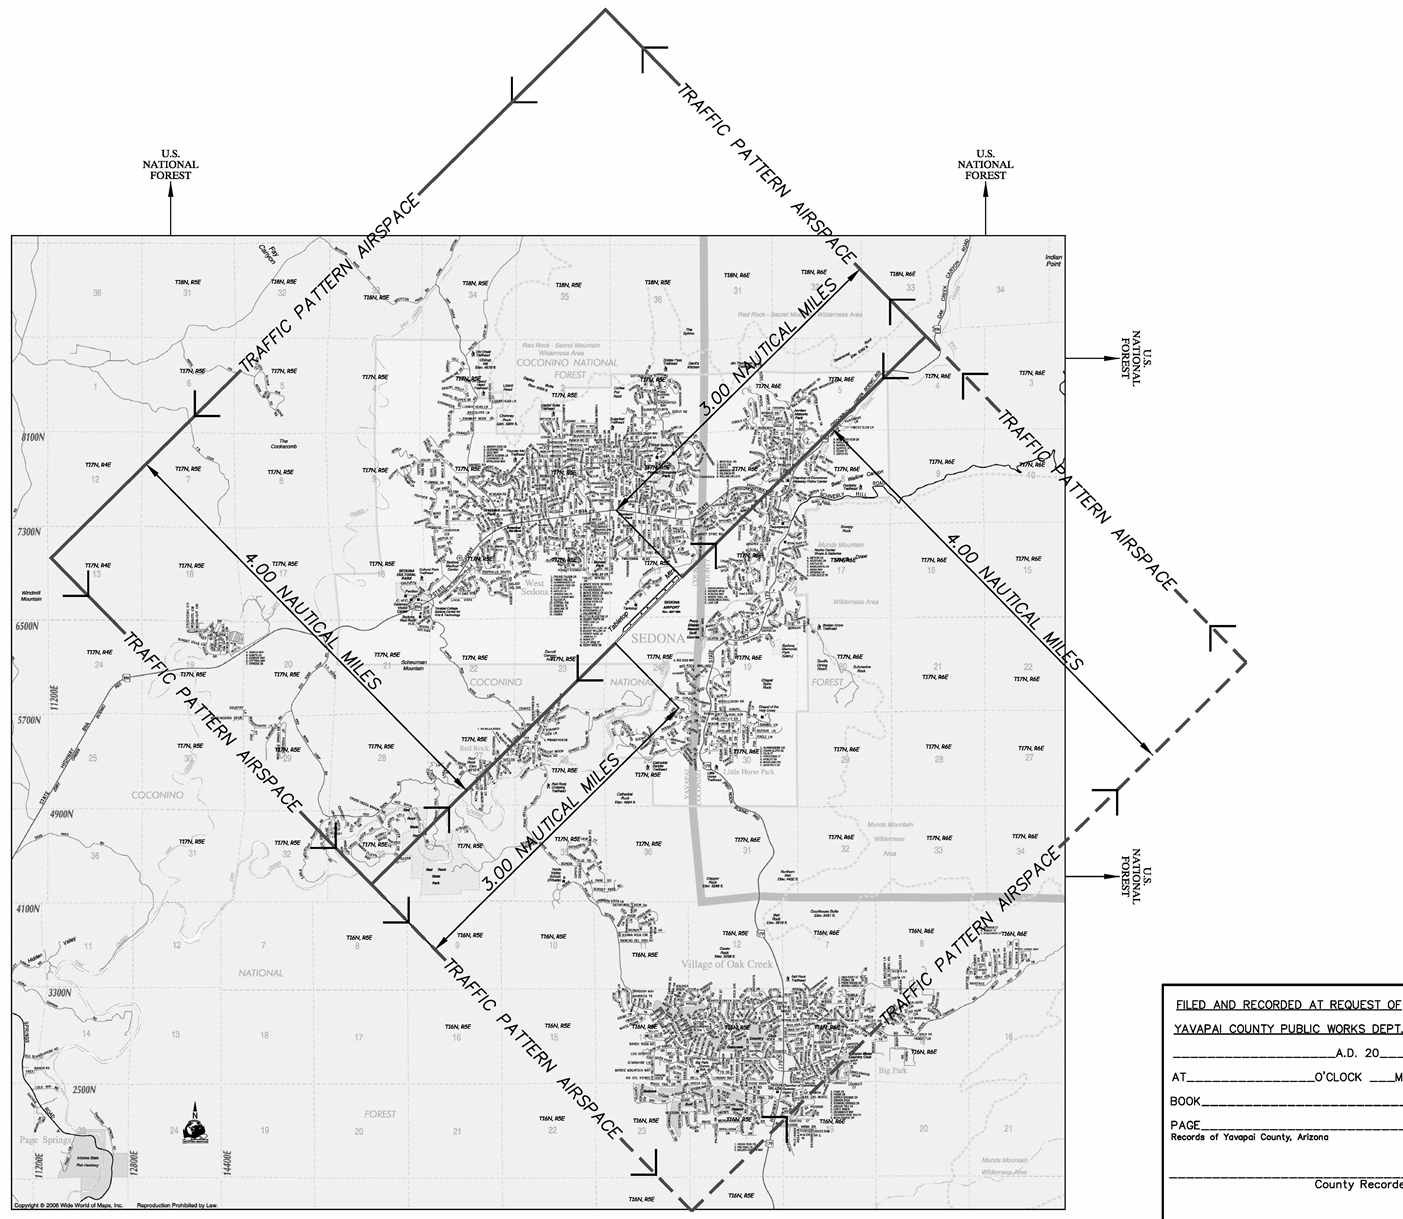 PLAT for Airport Traffic Area Actual Dimensions published by Yavapai County - CLICK to See Full Document